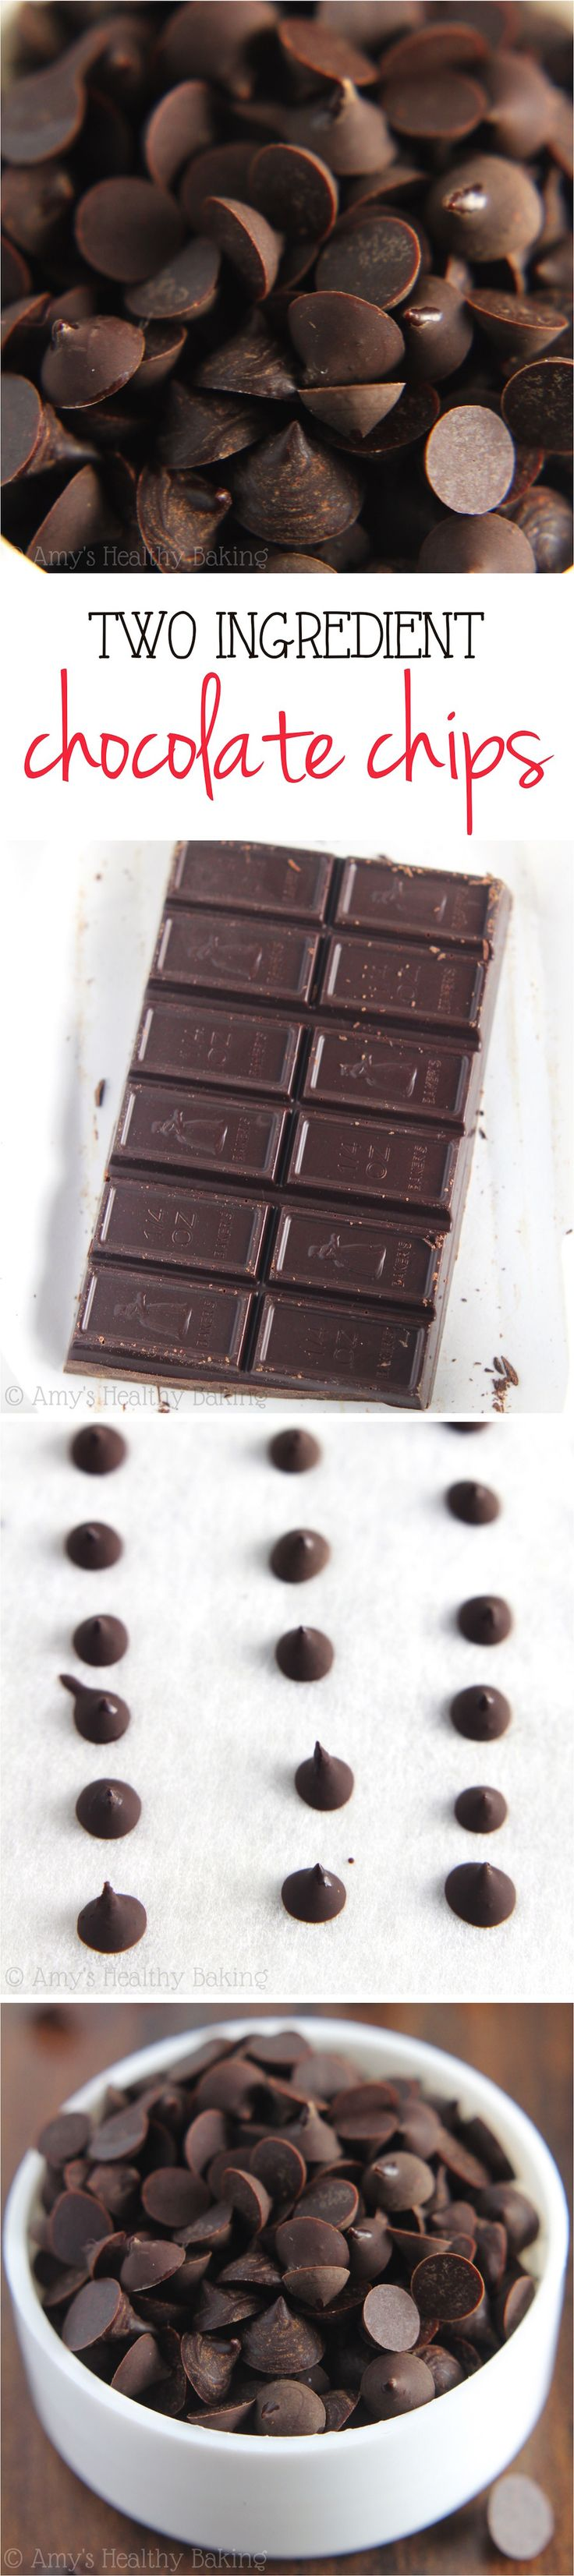 how to make chocolate plastic